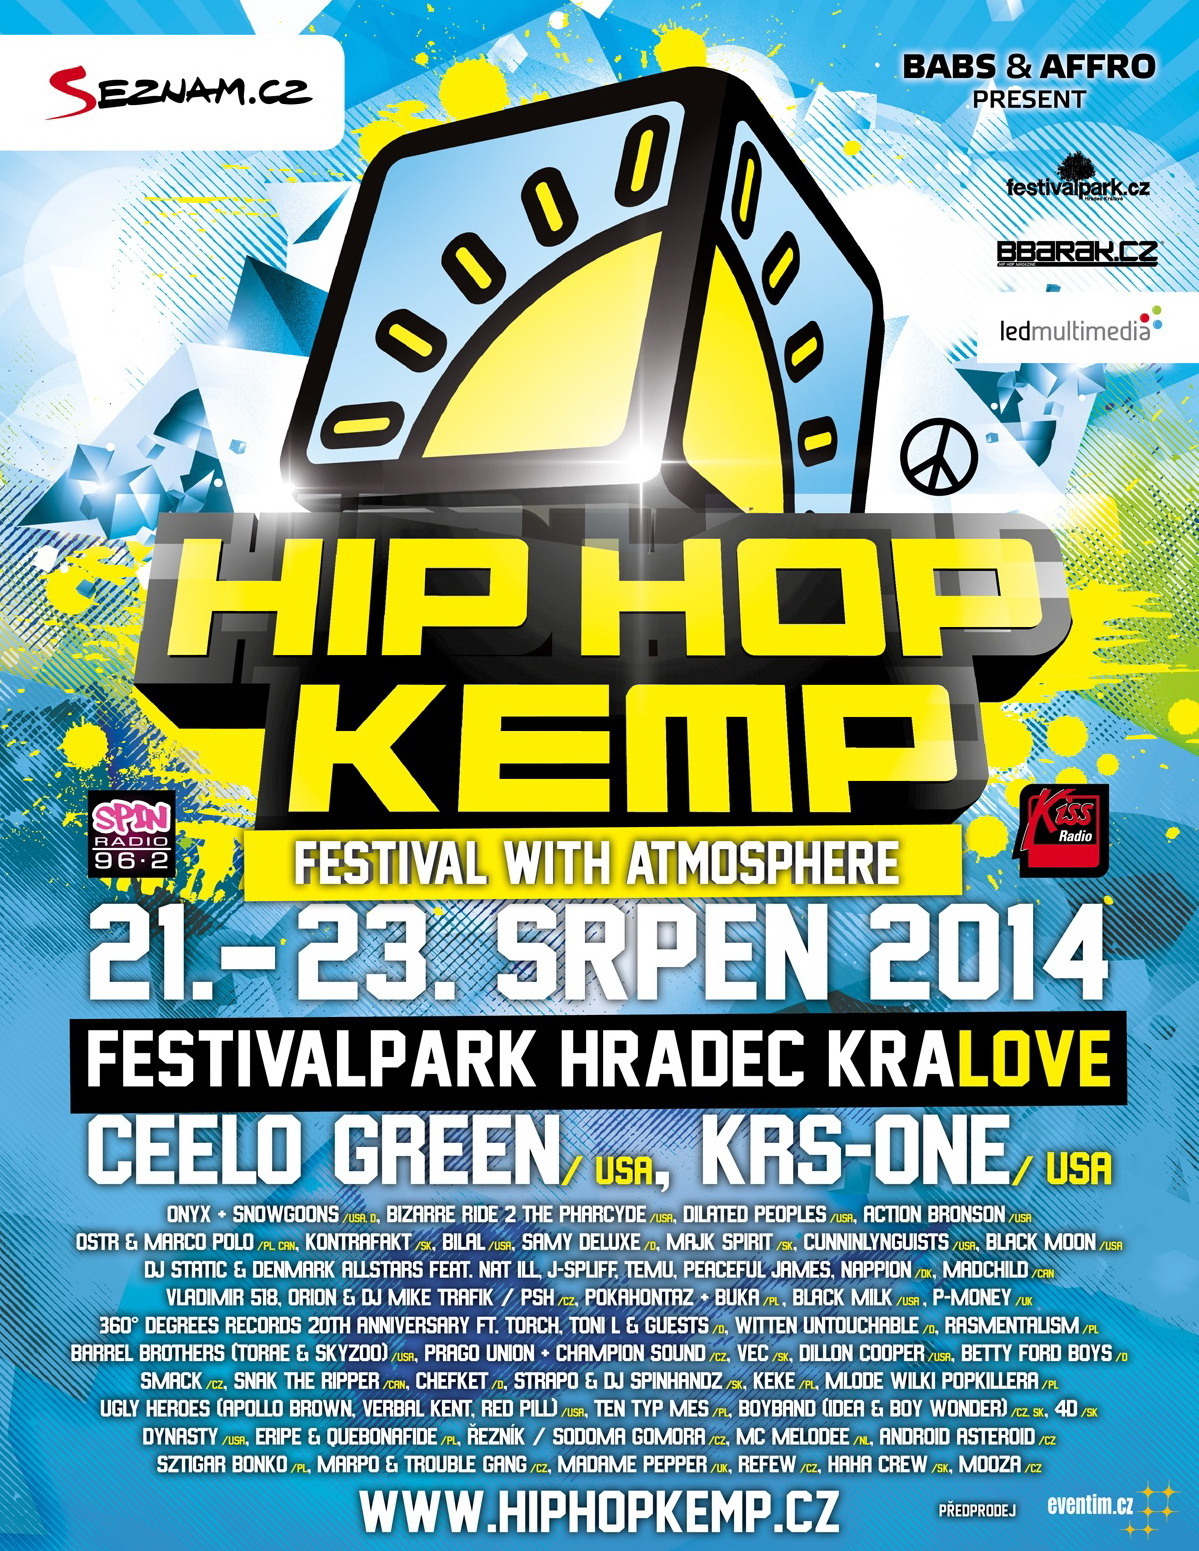 HIP HOP KEMP 2014 - The Year of the Cube